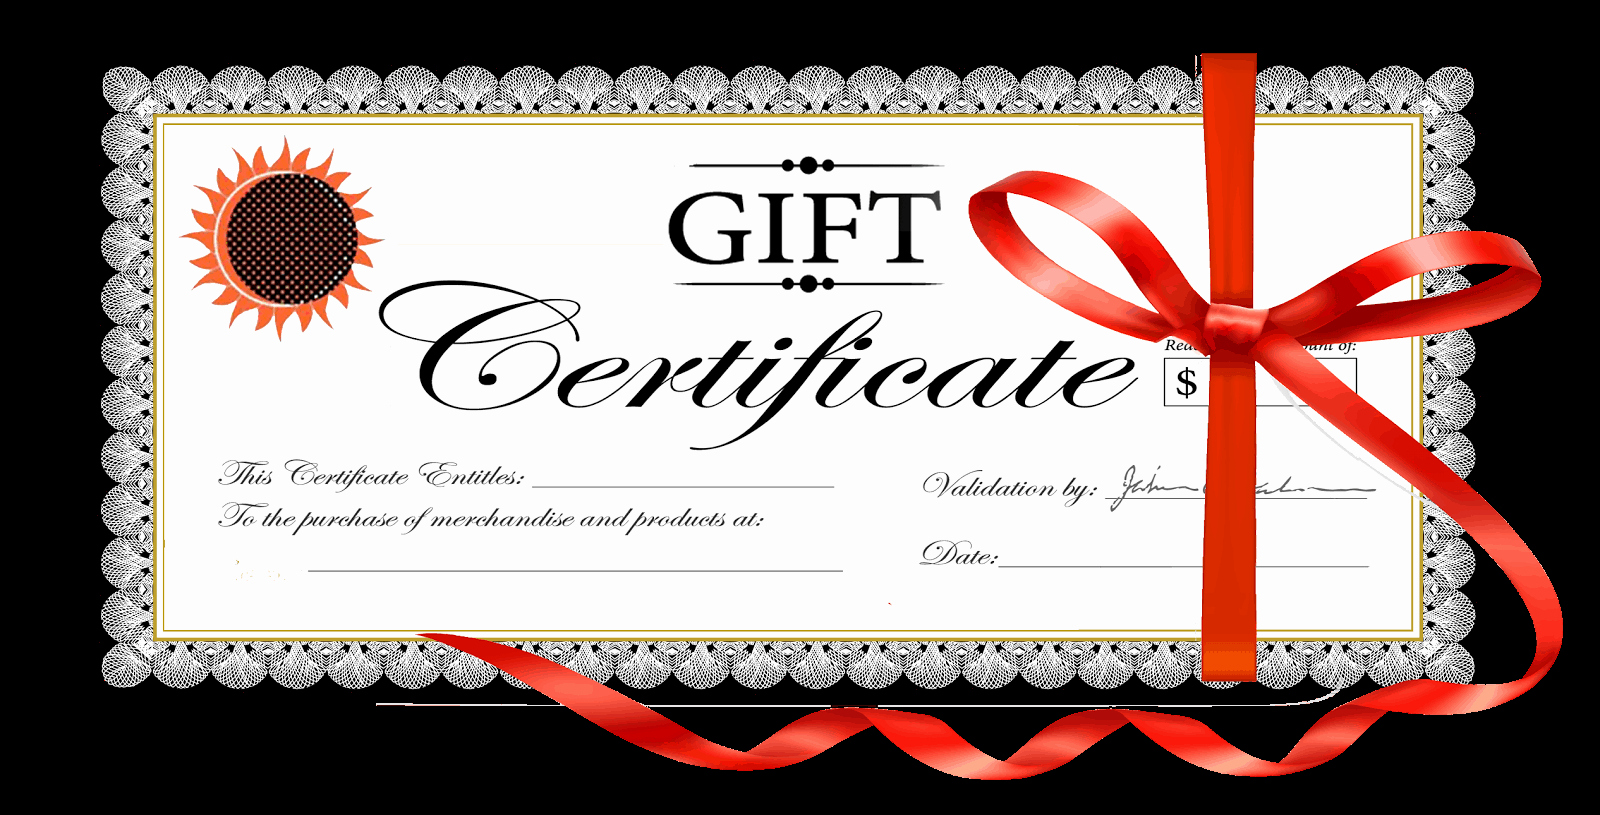 Father's Day Gift Certificate Template Awesome 18 Gift Certificate Templates Excel Pdf formats